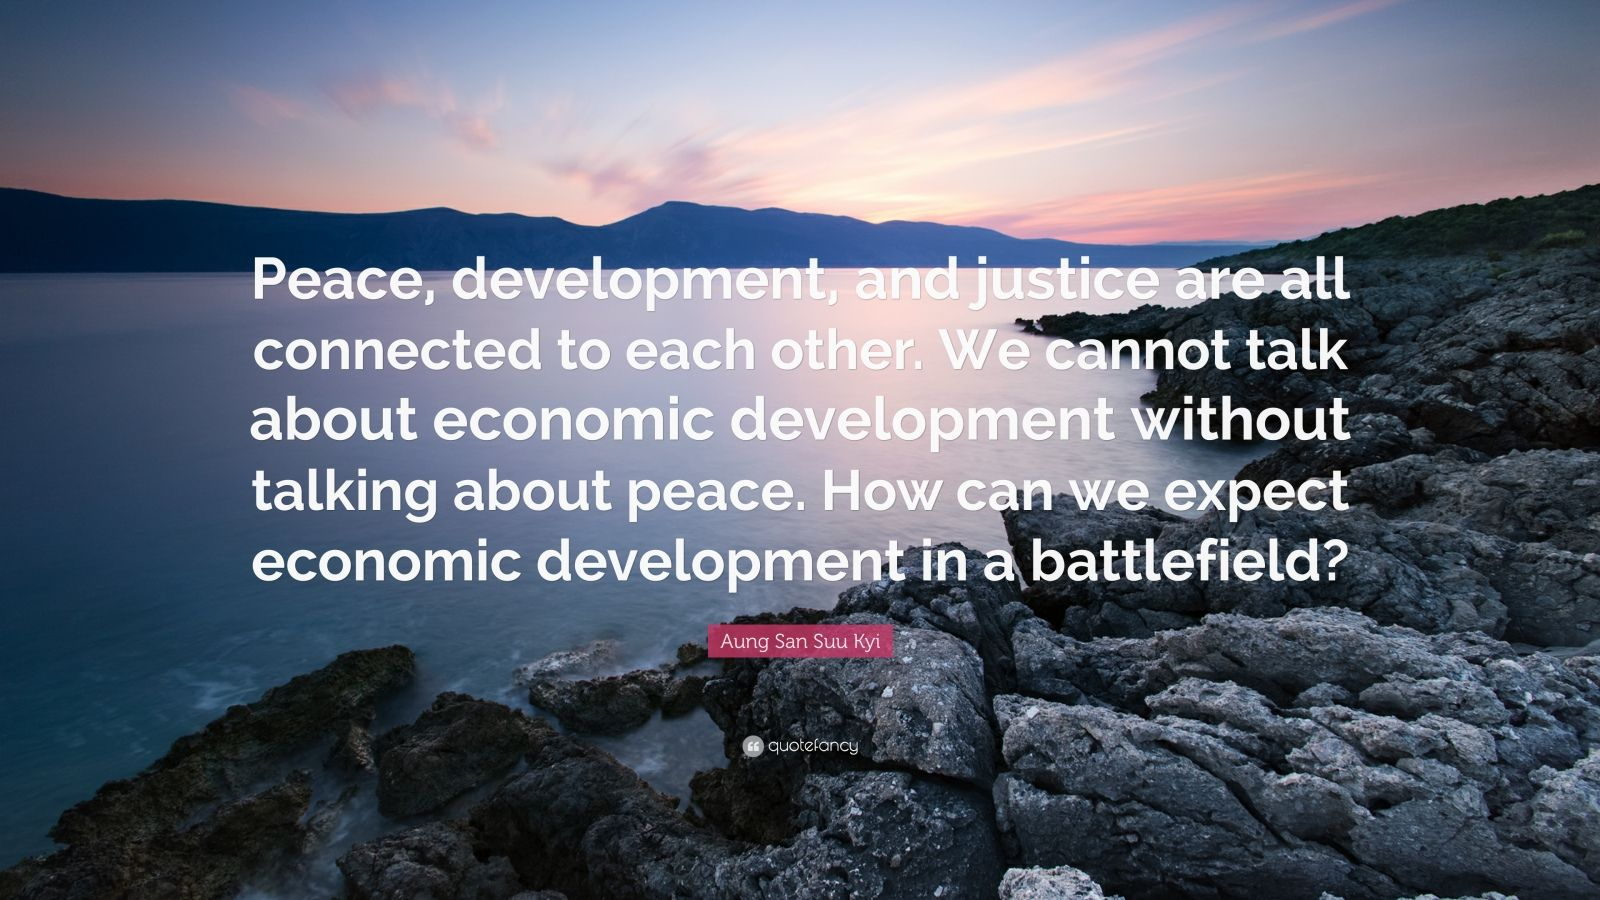 """Aung San Suu Kyi Quote: """"Peace, development, and justice are all connected to each other. We cannot talk about economic development without talking about peace. How can we expect economic development in a battlefield?"""""""